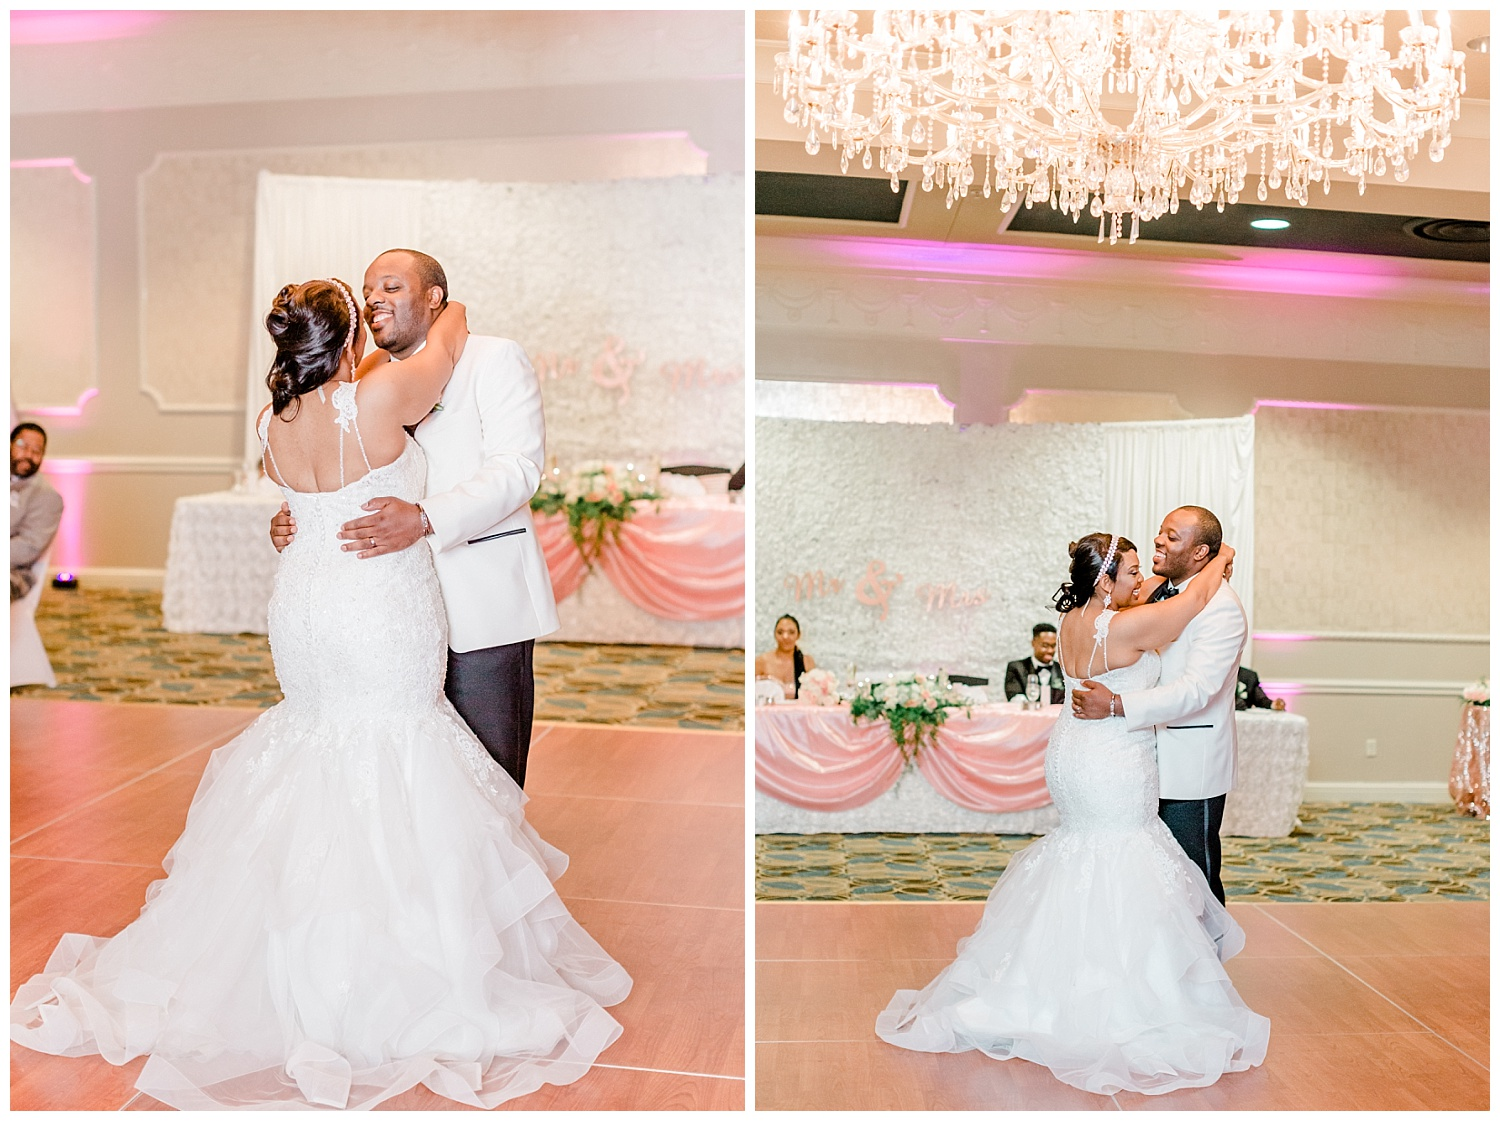 The couple had the sweetest first dance. They are so in love and so happy to be sharing this day with their family & friends.